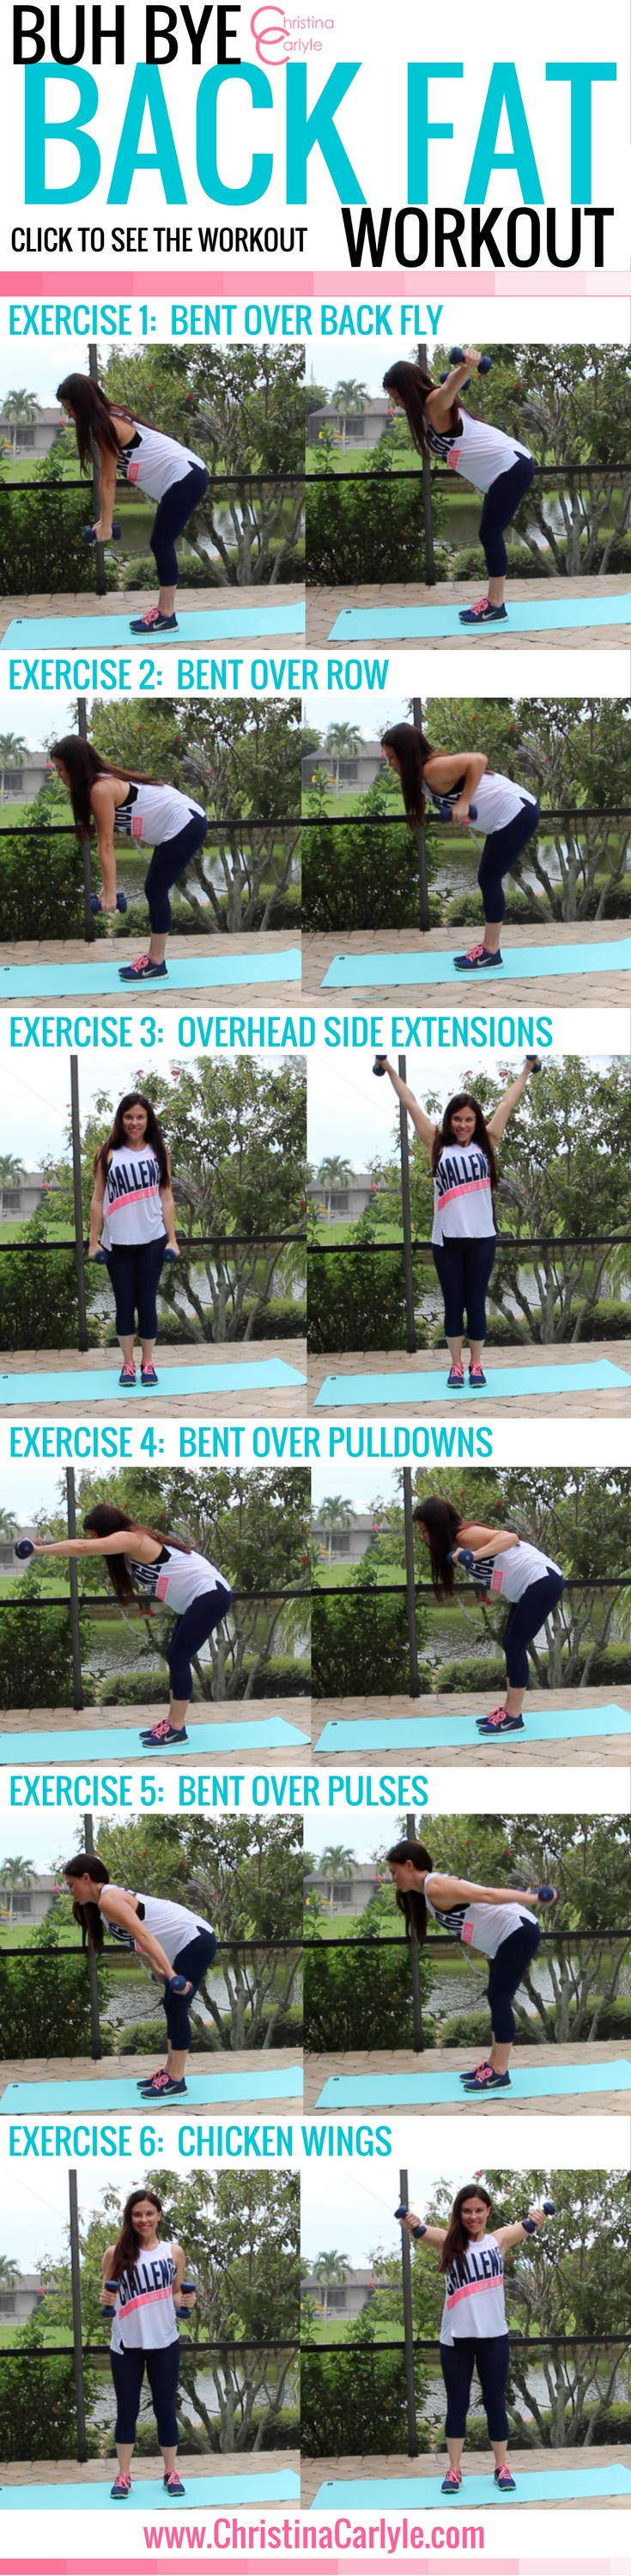 Exercises for Back Fat - Christina Carlyle